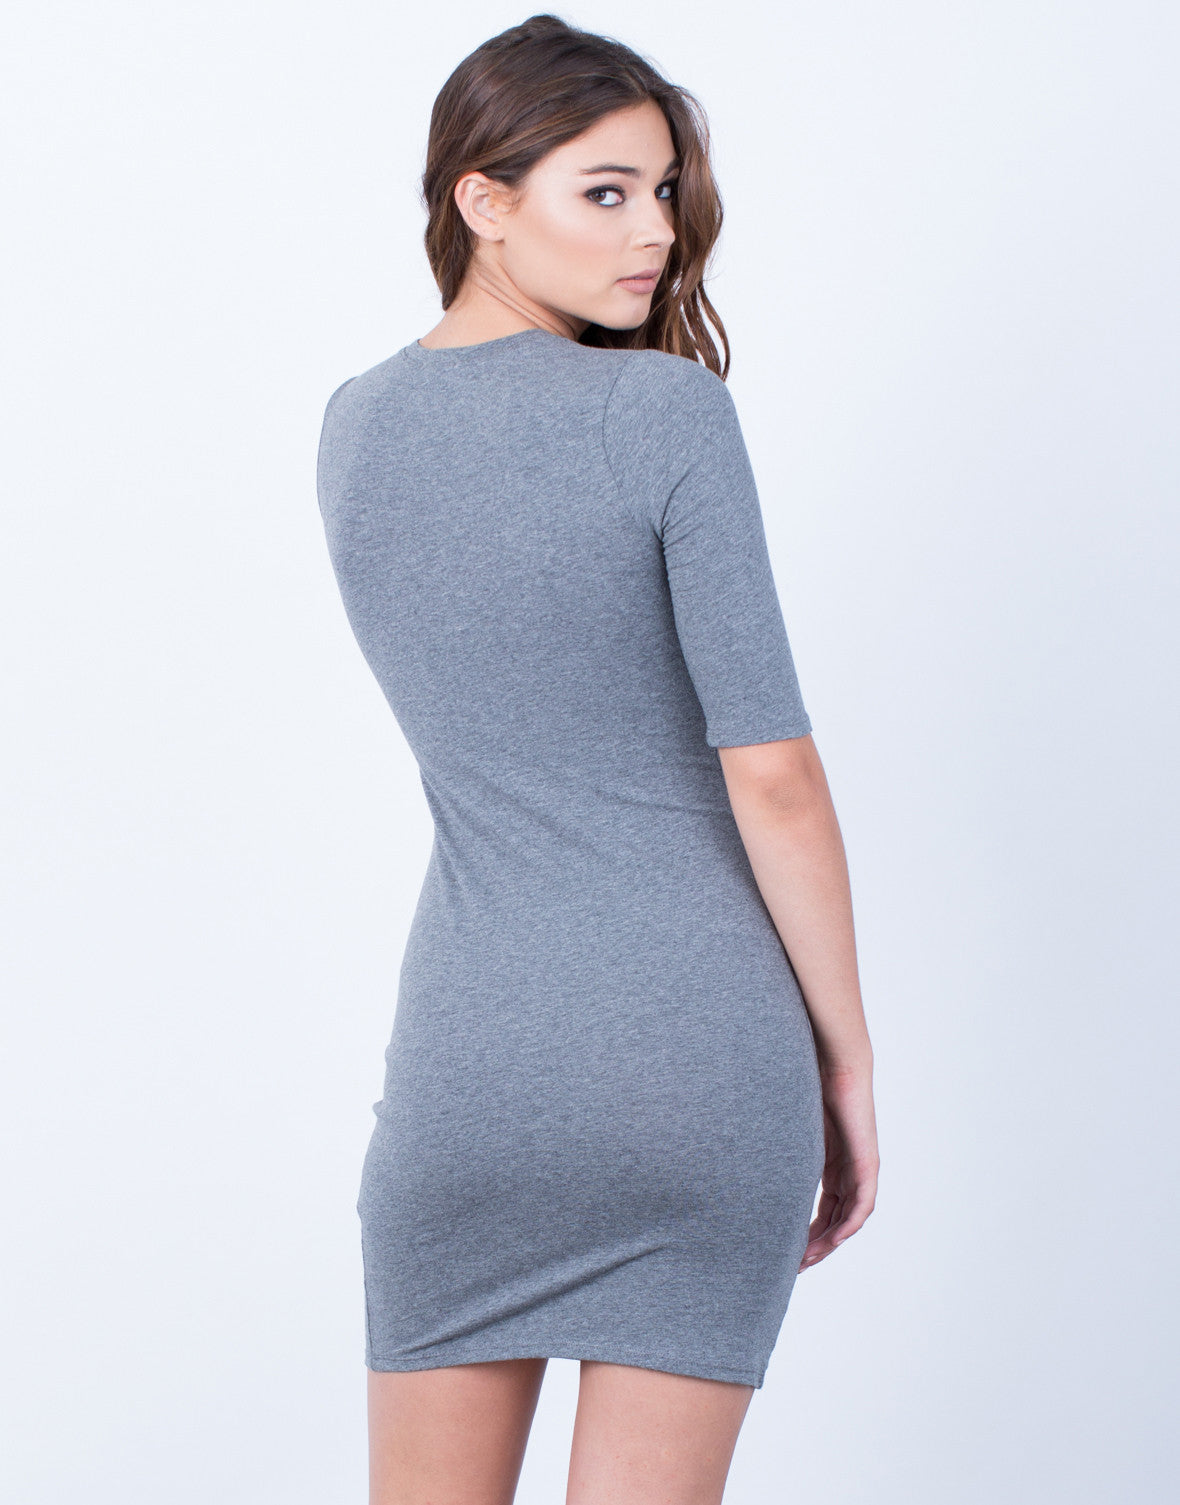 Back View of Your Everyday T-Shirt Dress